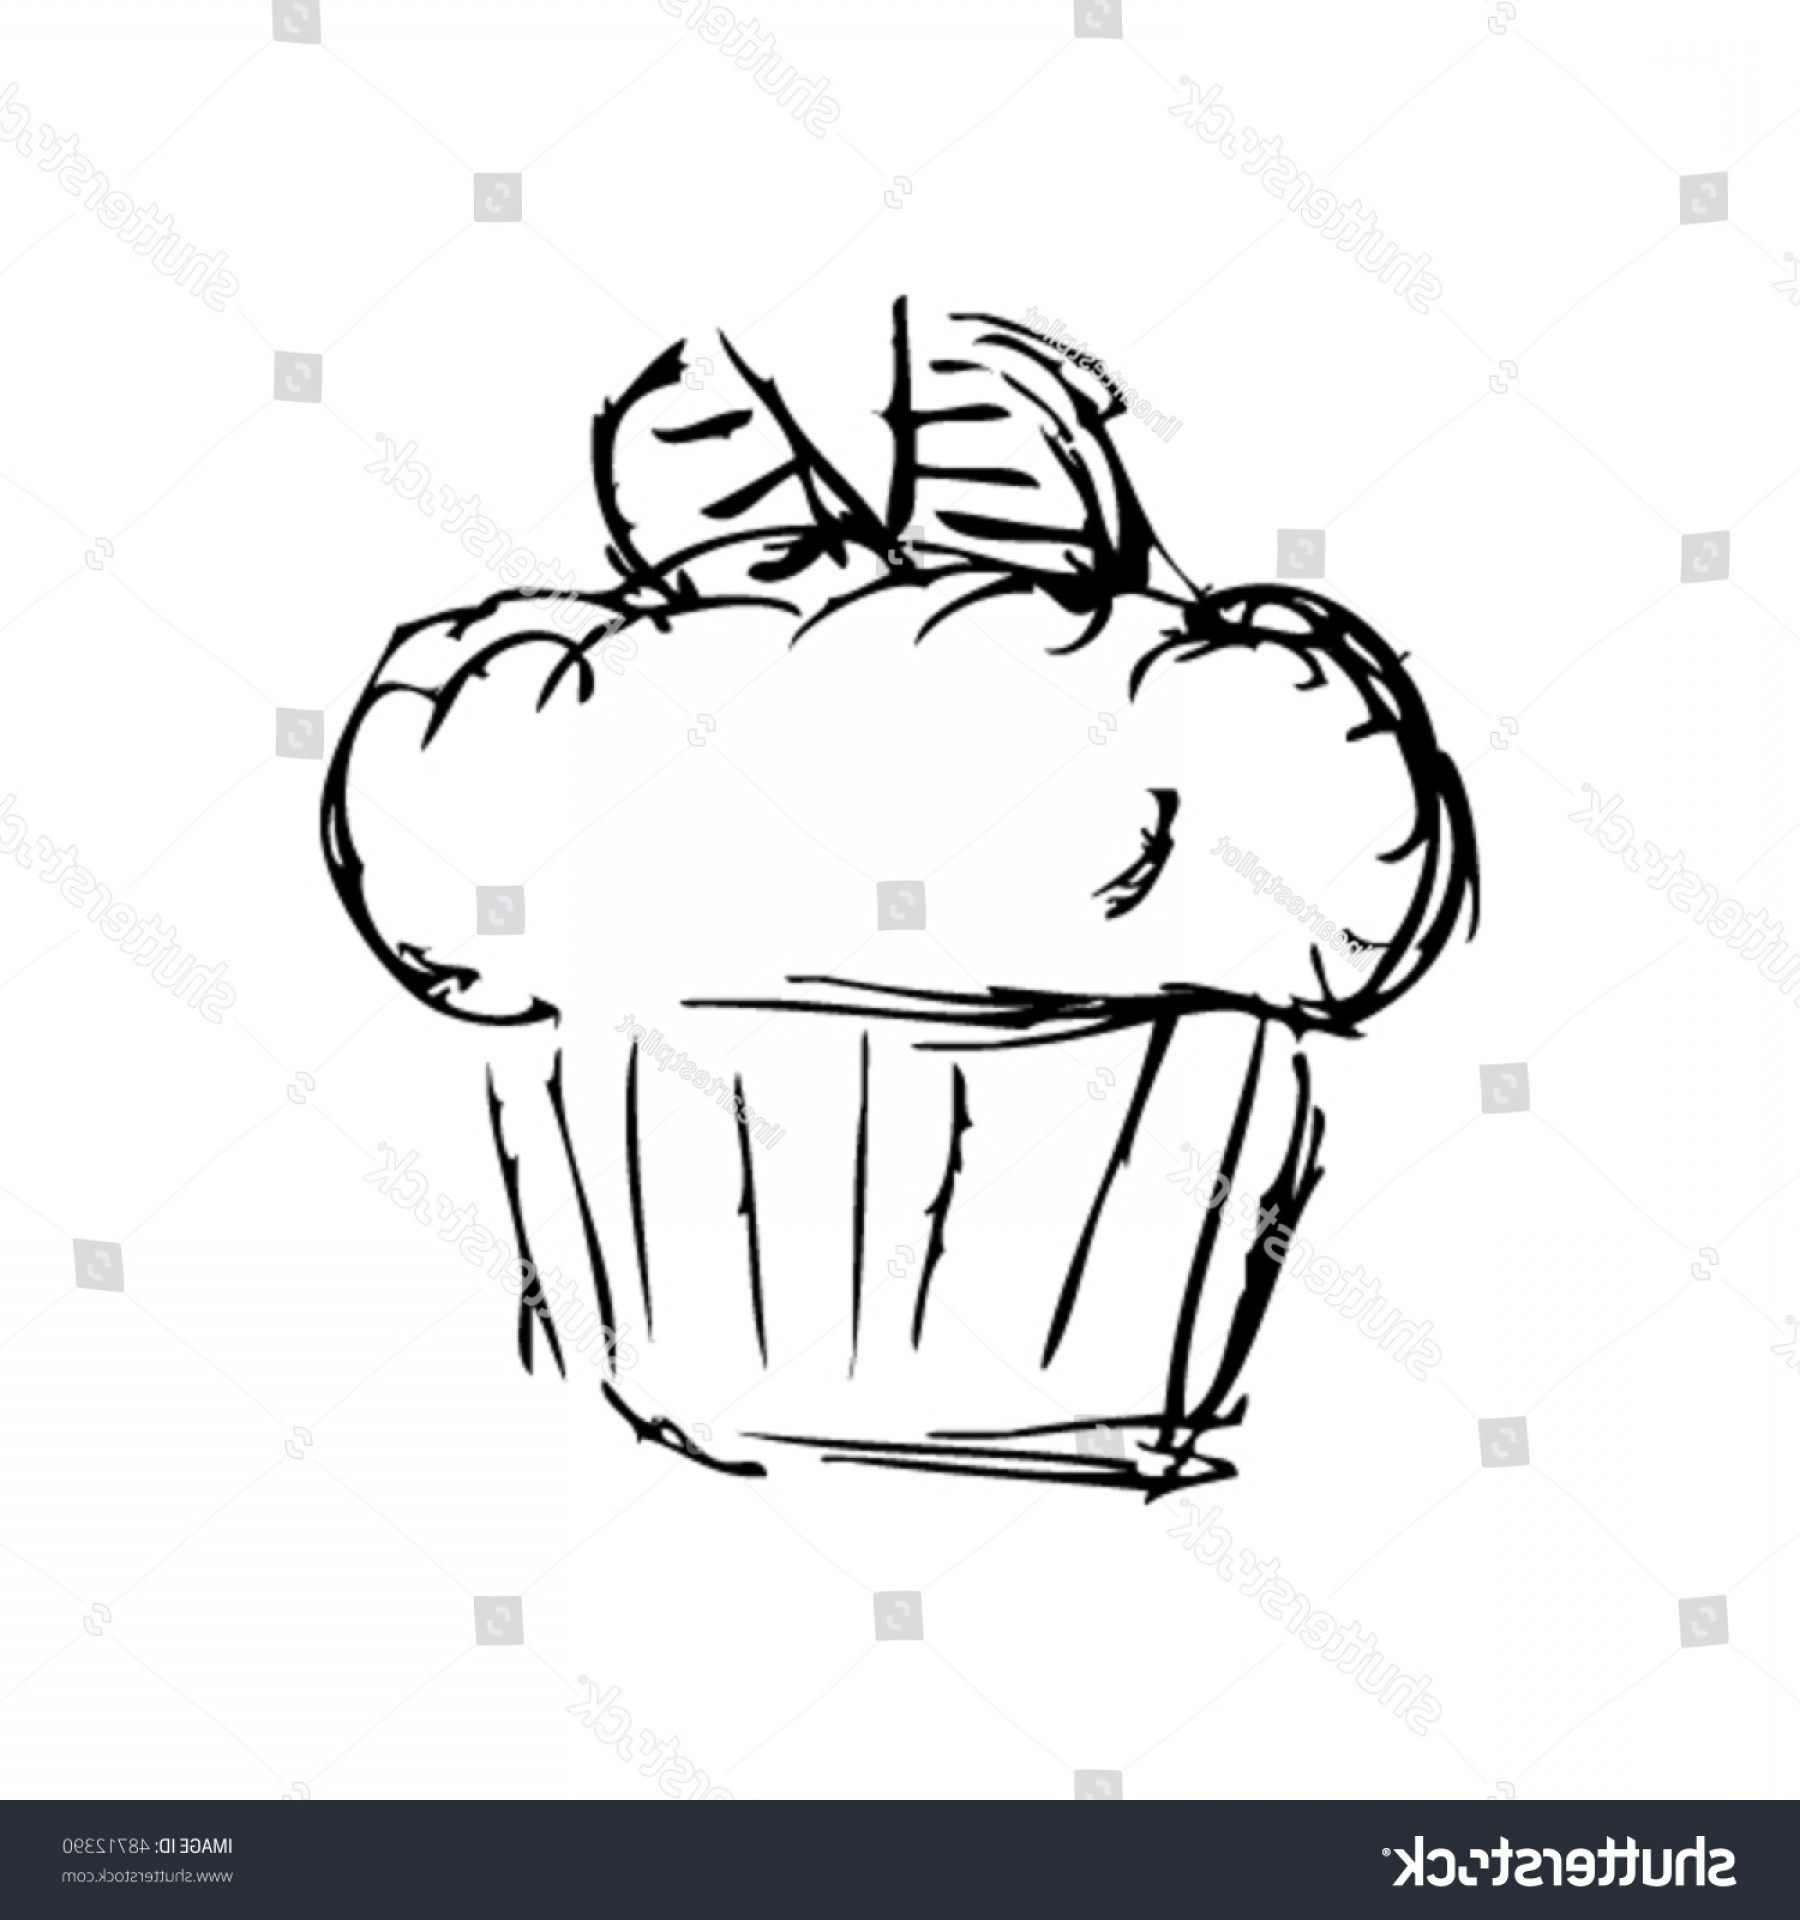 Scratch Y Drawing Vector: Stock Vector Scratchy Vector Cake Drawing